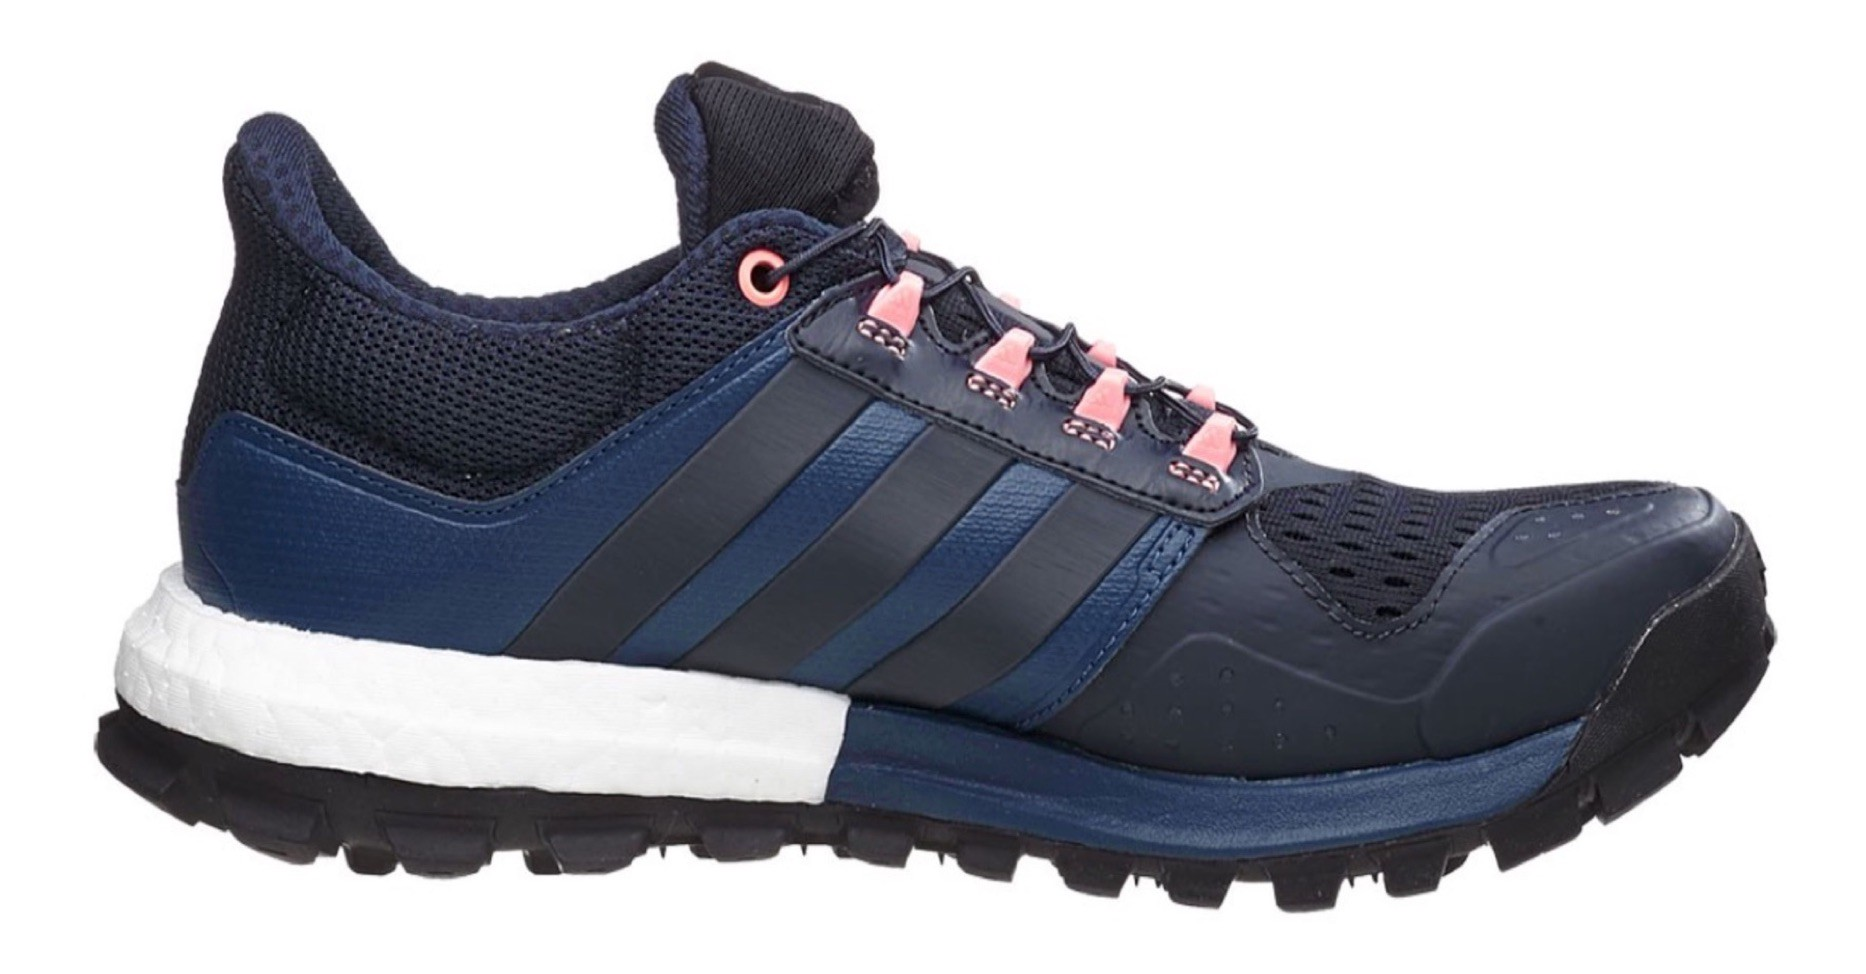 Chaussures Trail Femme Chaussures Trail Adidas Adidas Adidas Femme 2IDH9WEeY